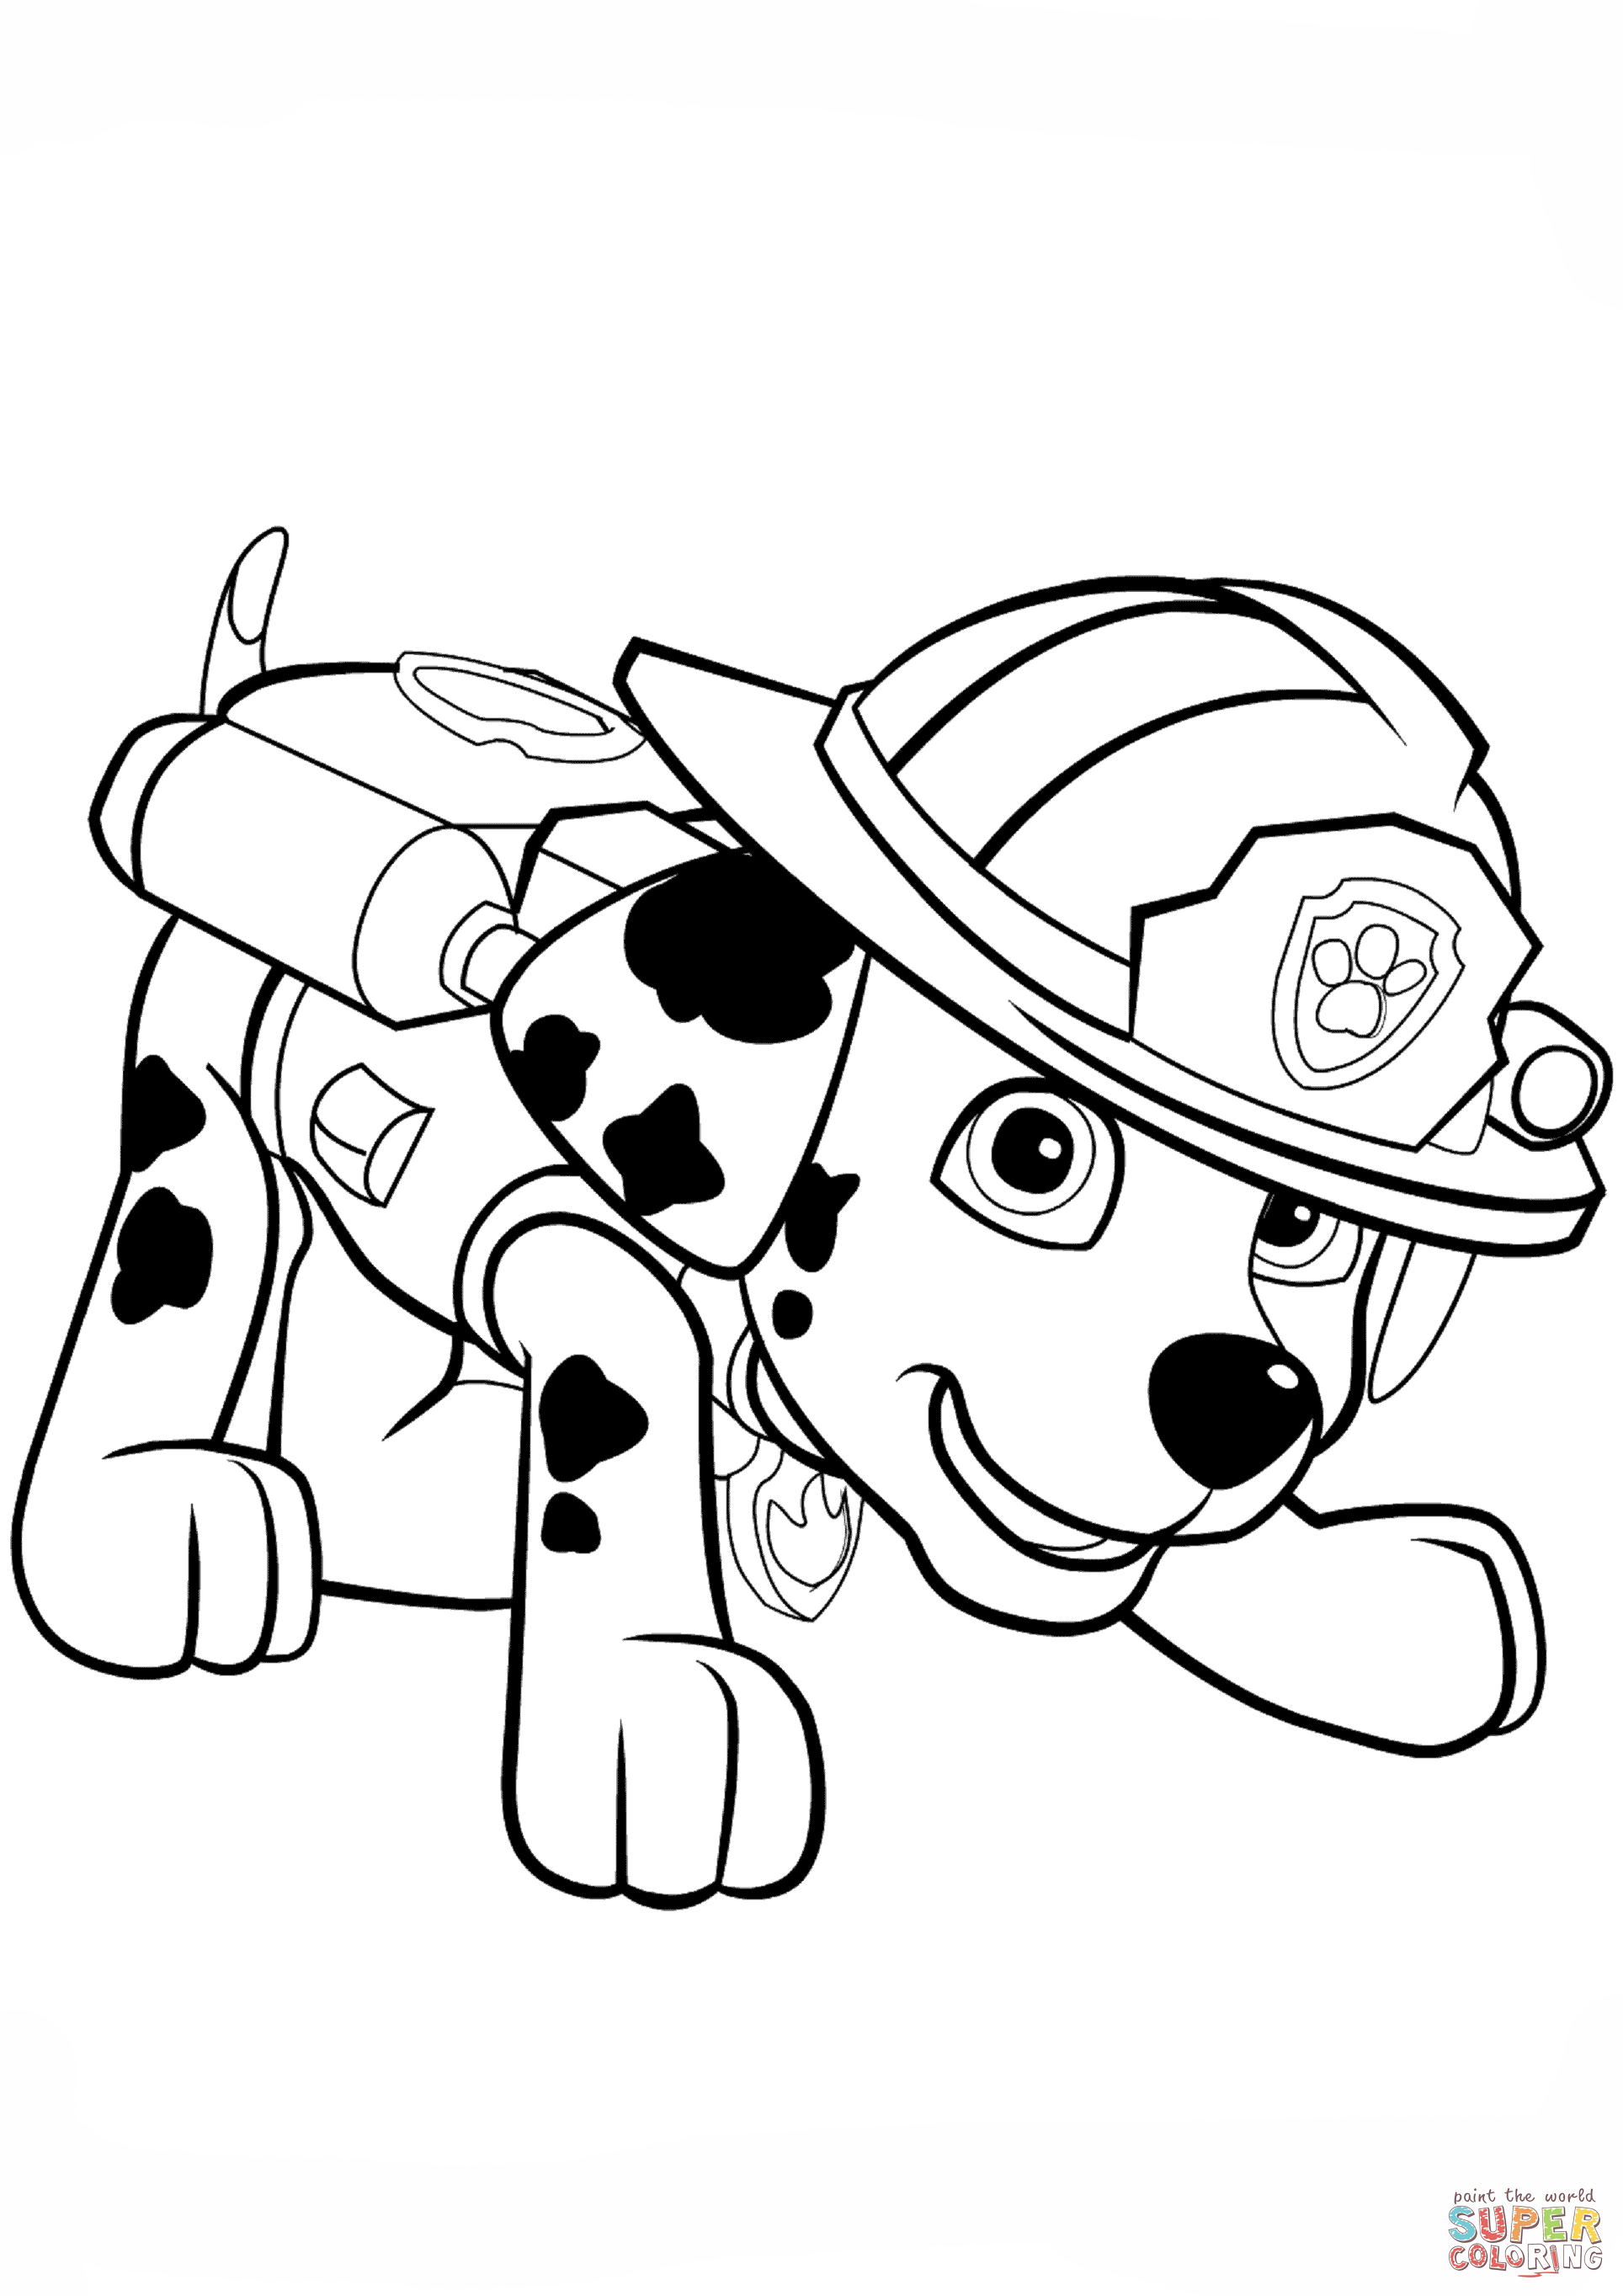 Marshall PAW Patrol Coloring Pages Printable print Pinterest Paw patrol, Coloring books ...